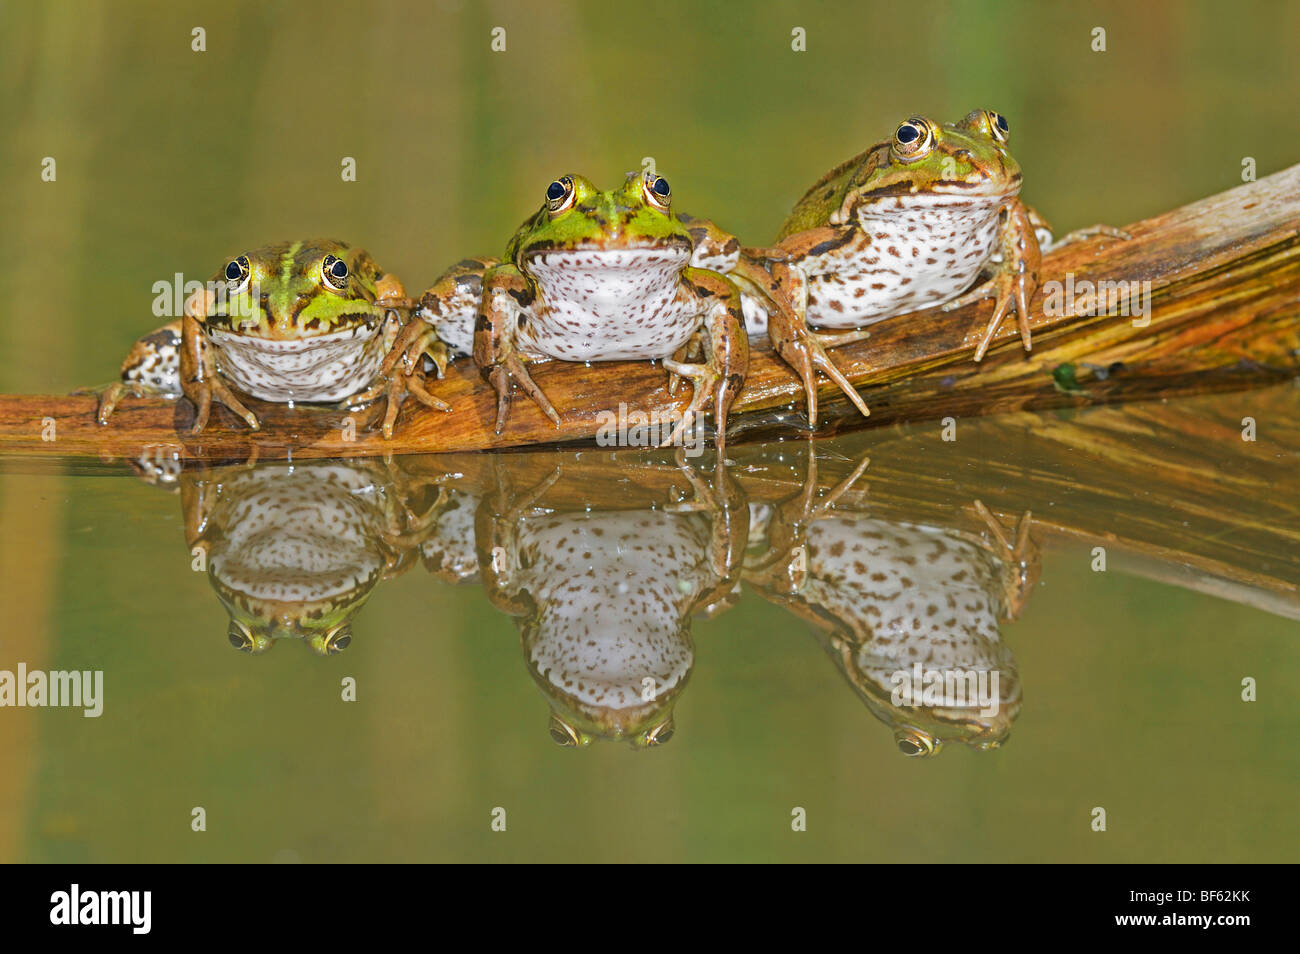 Edible Frog (Rana esculenta), adultes on log, Suisse, Europe Photo Stock